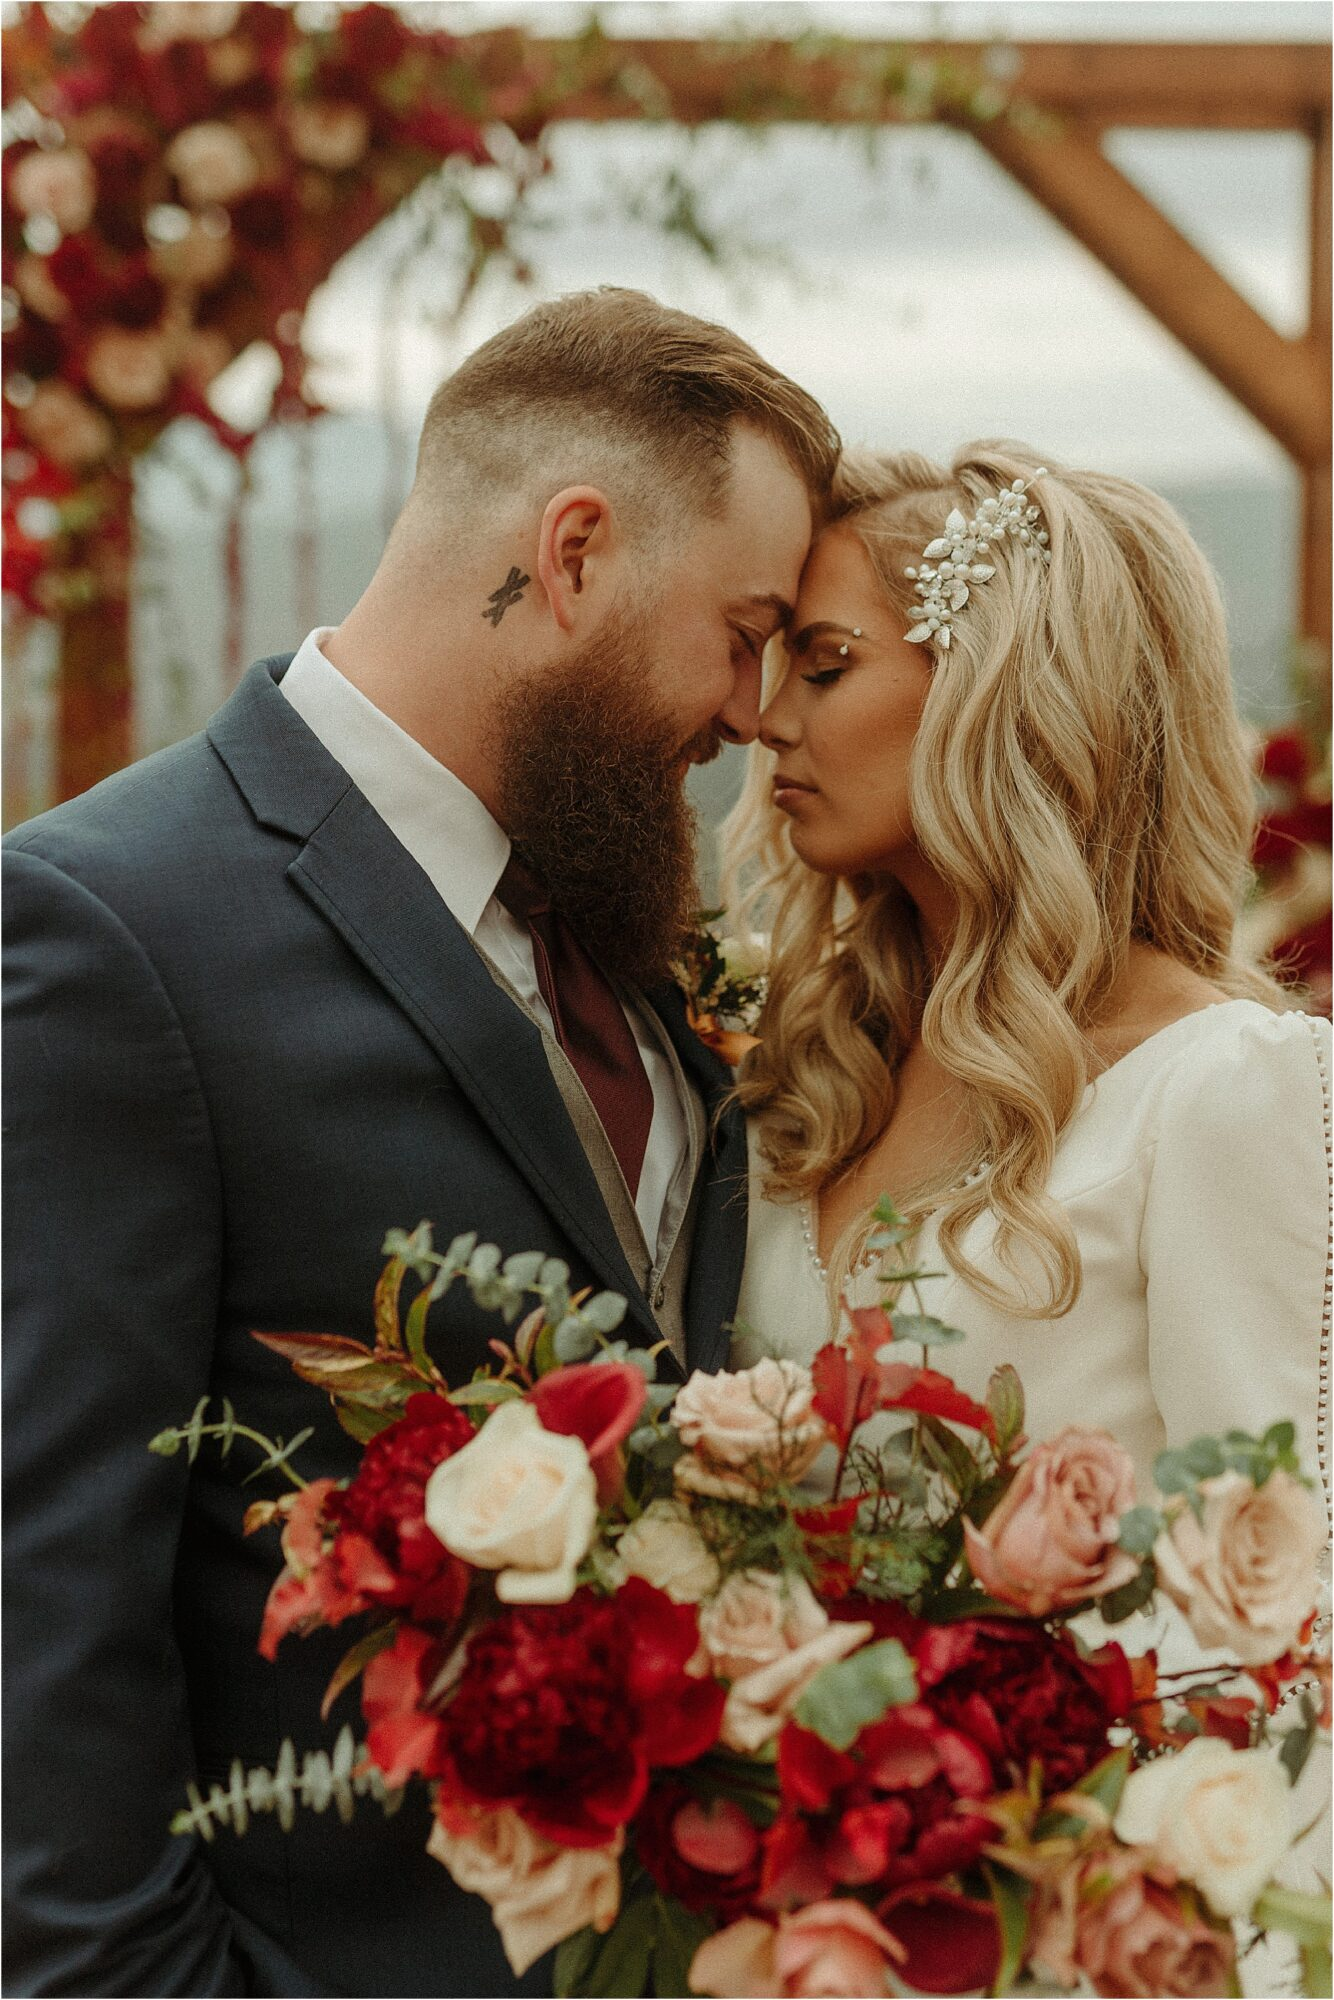 man and woman touch foreheads together while holding large jewel tone bouquet